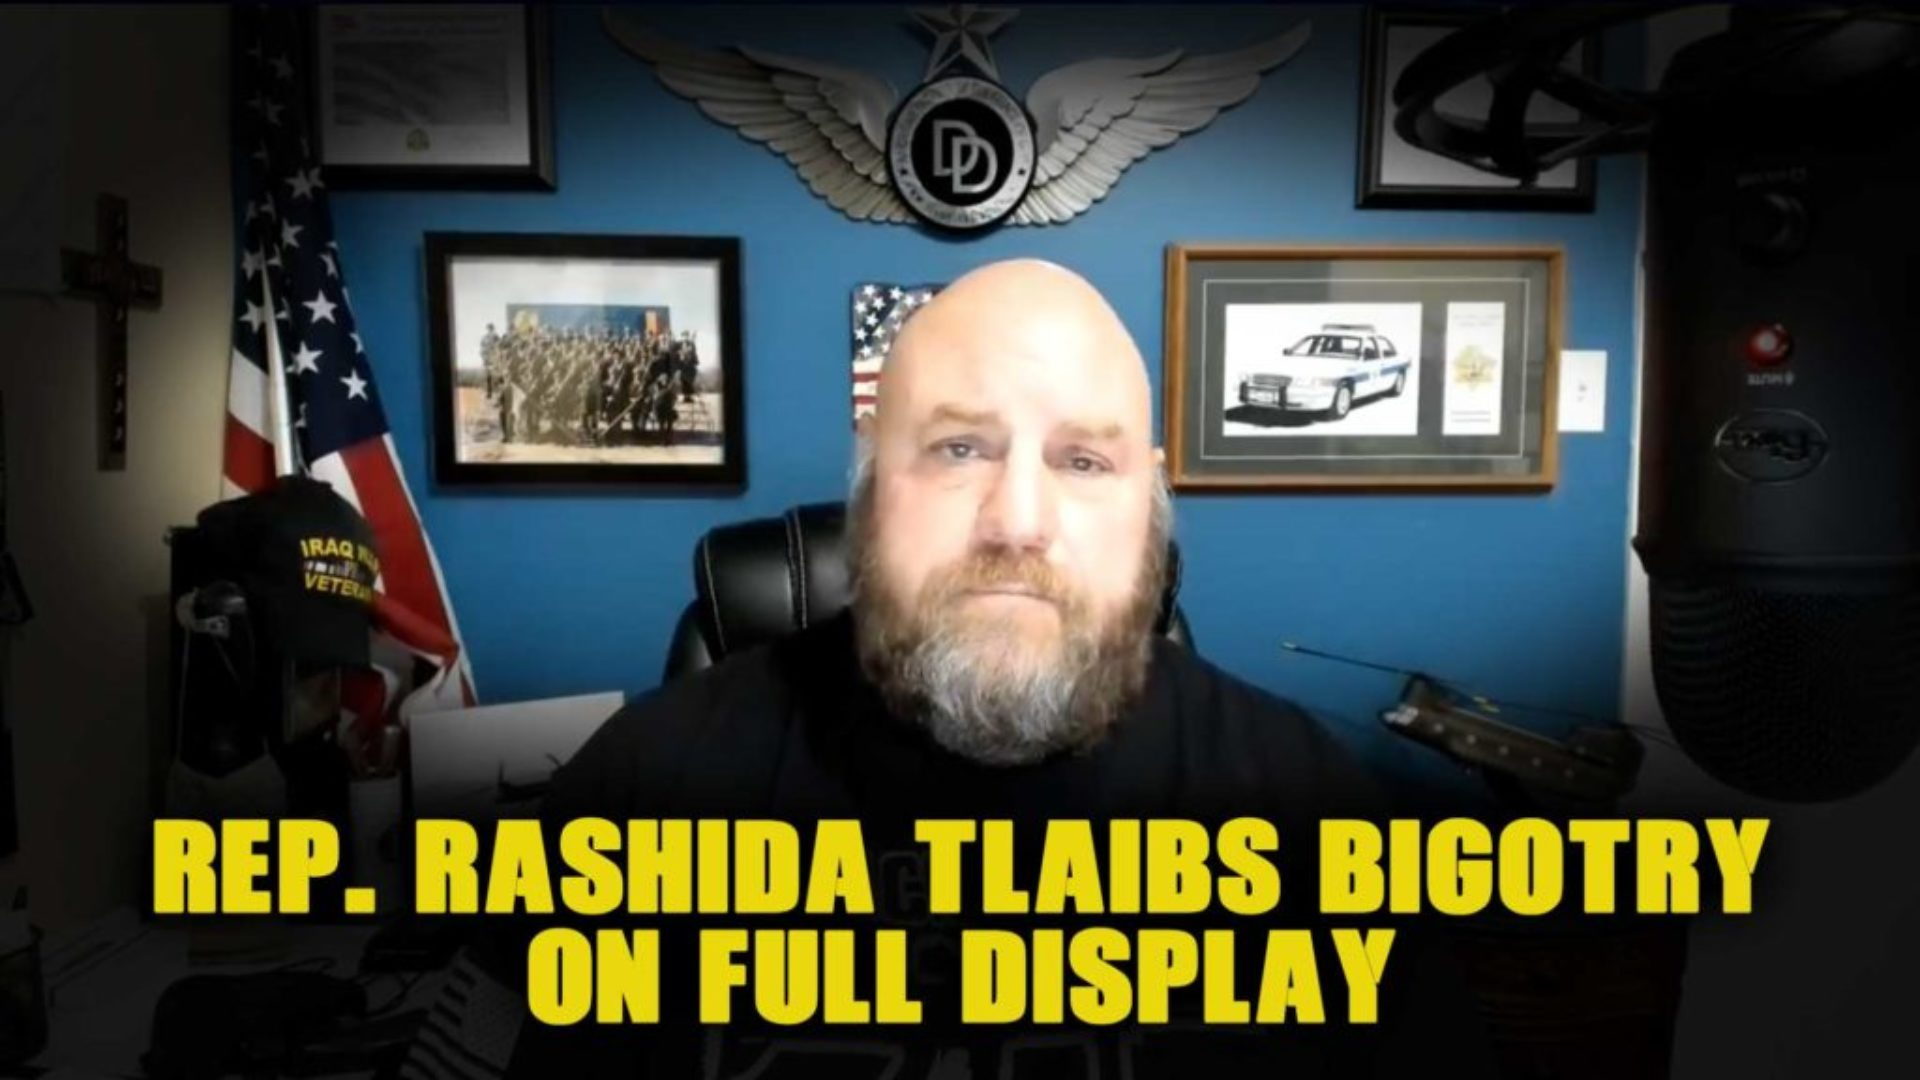 Rep-Rashida-Tlaibs-Bigotry-On-Full-Display